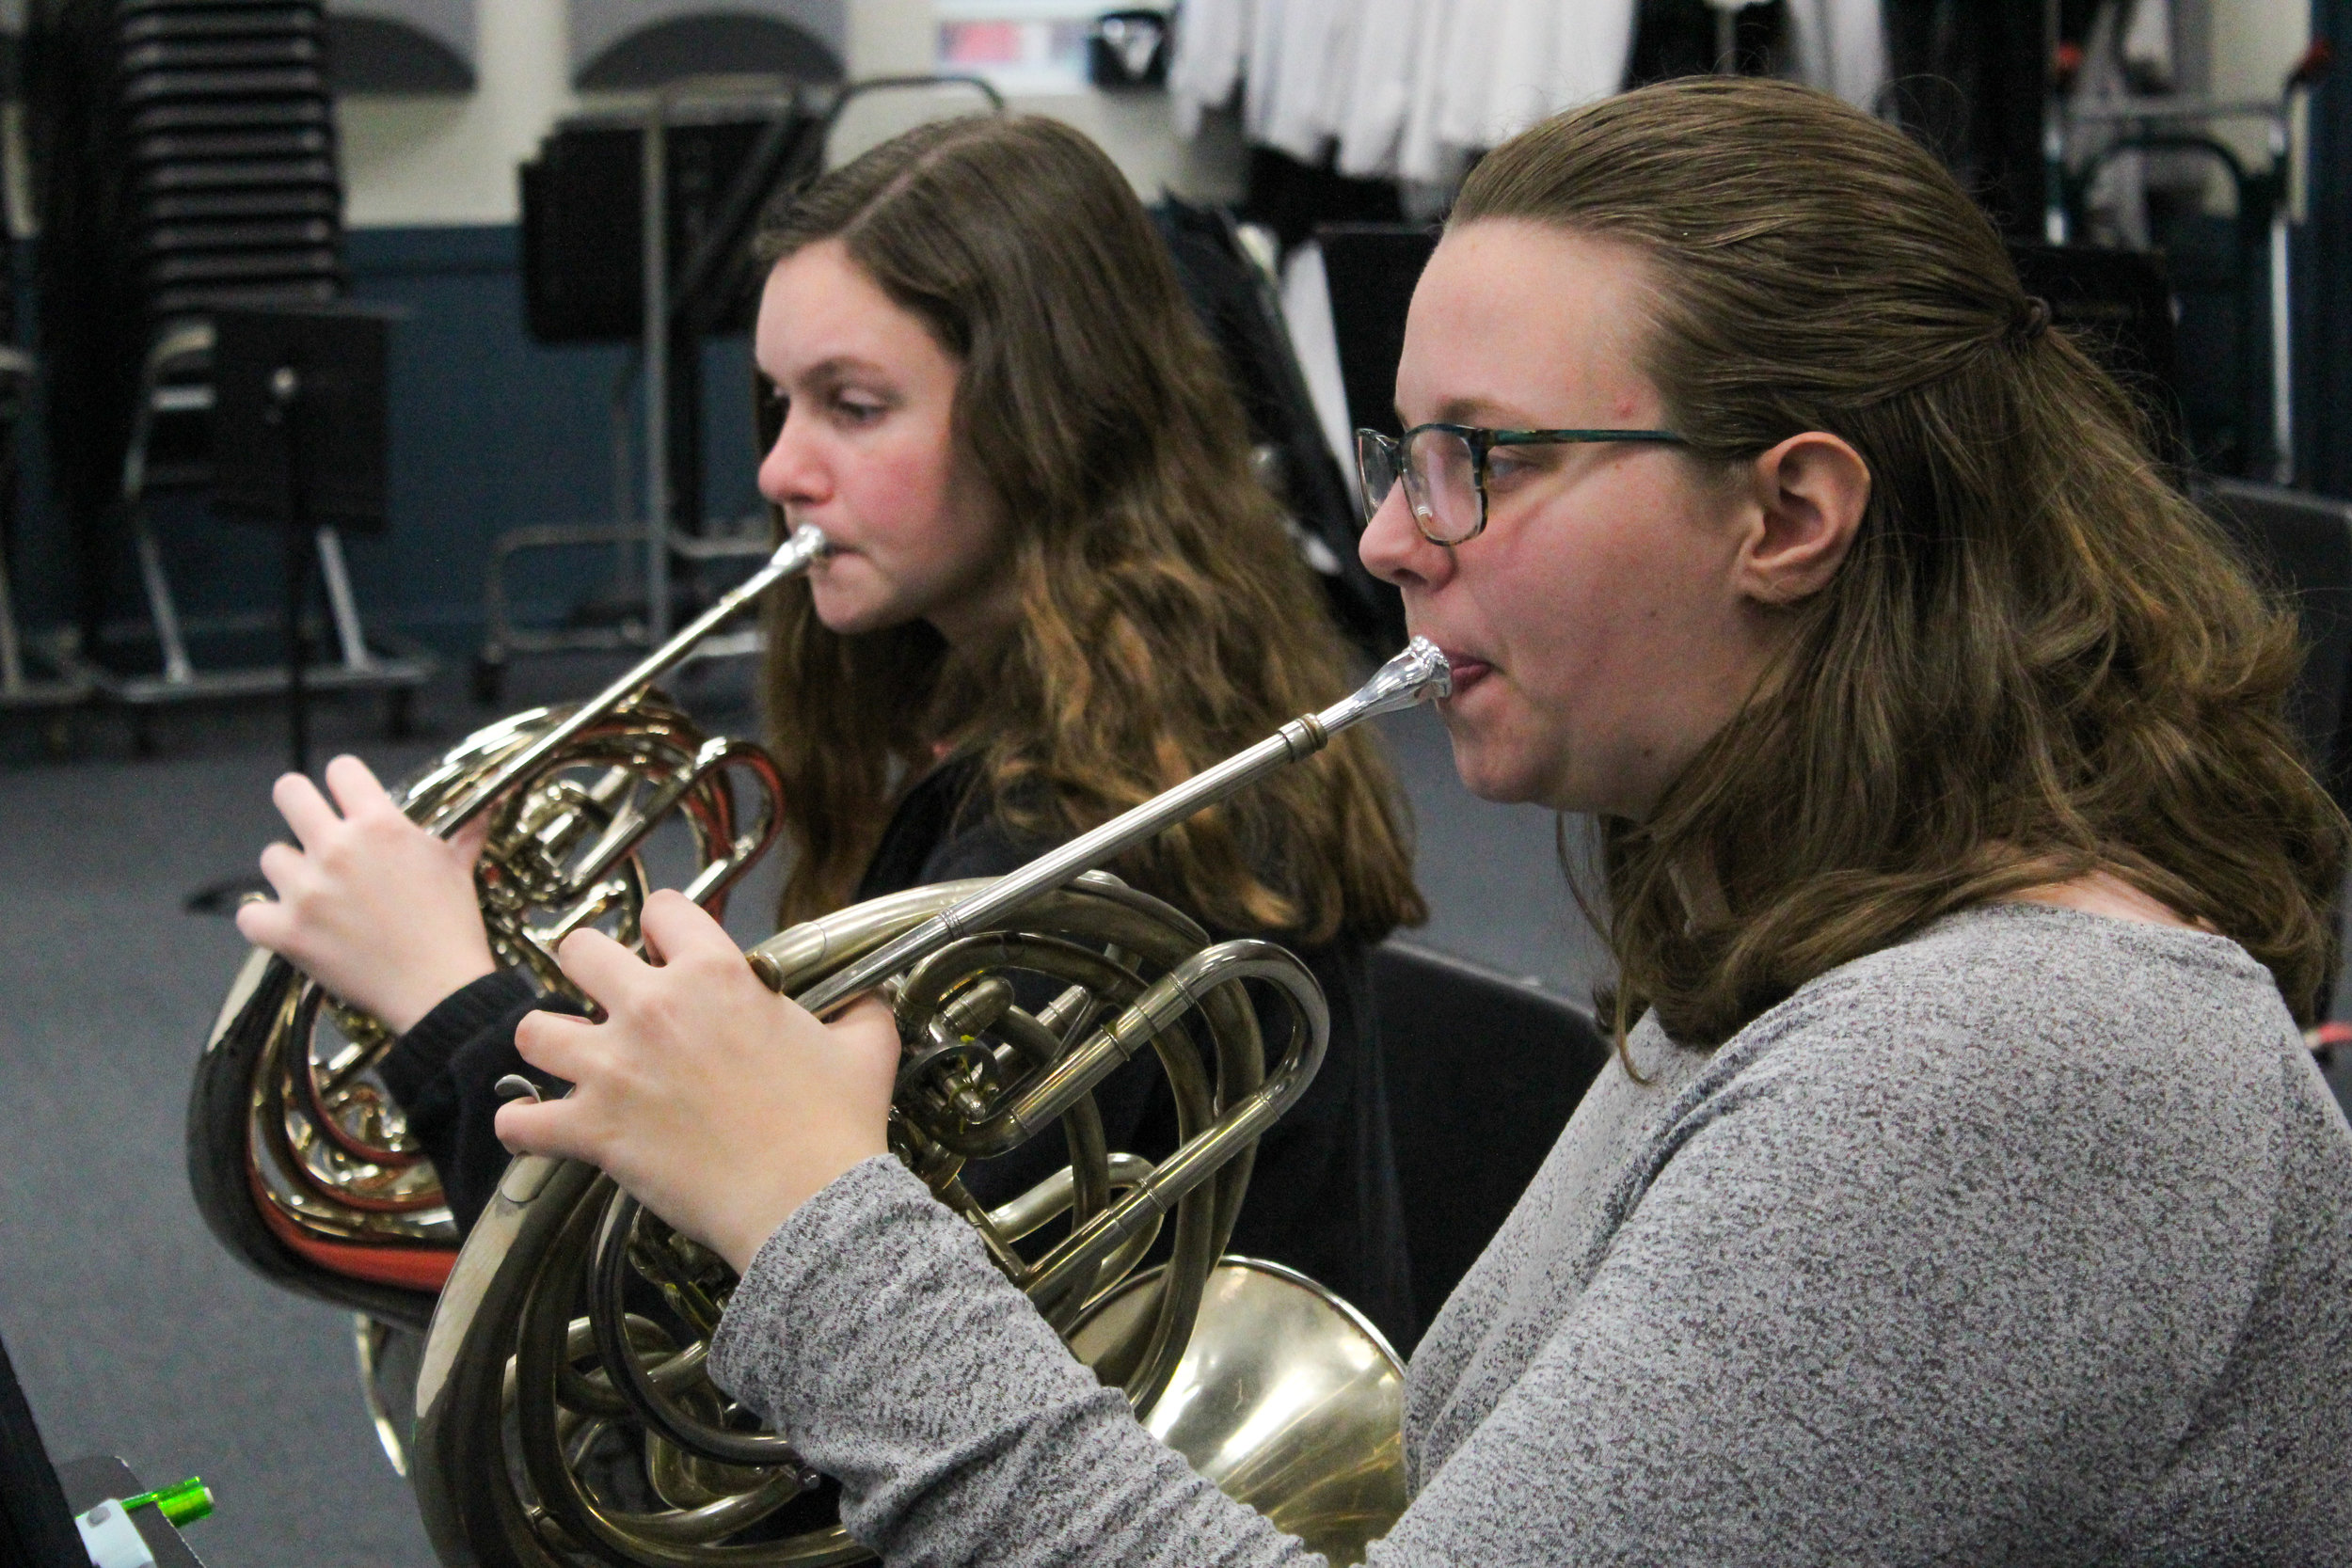 The two orchestra students practice playing their horns.